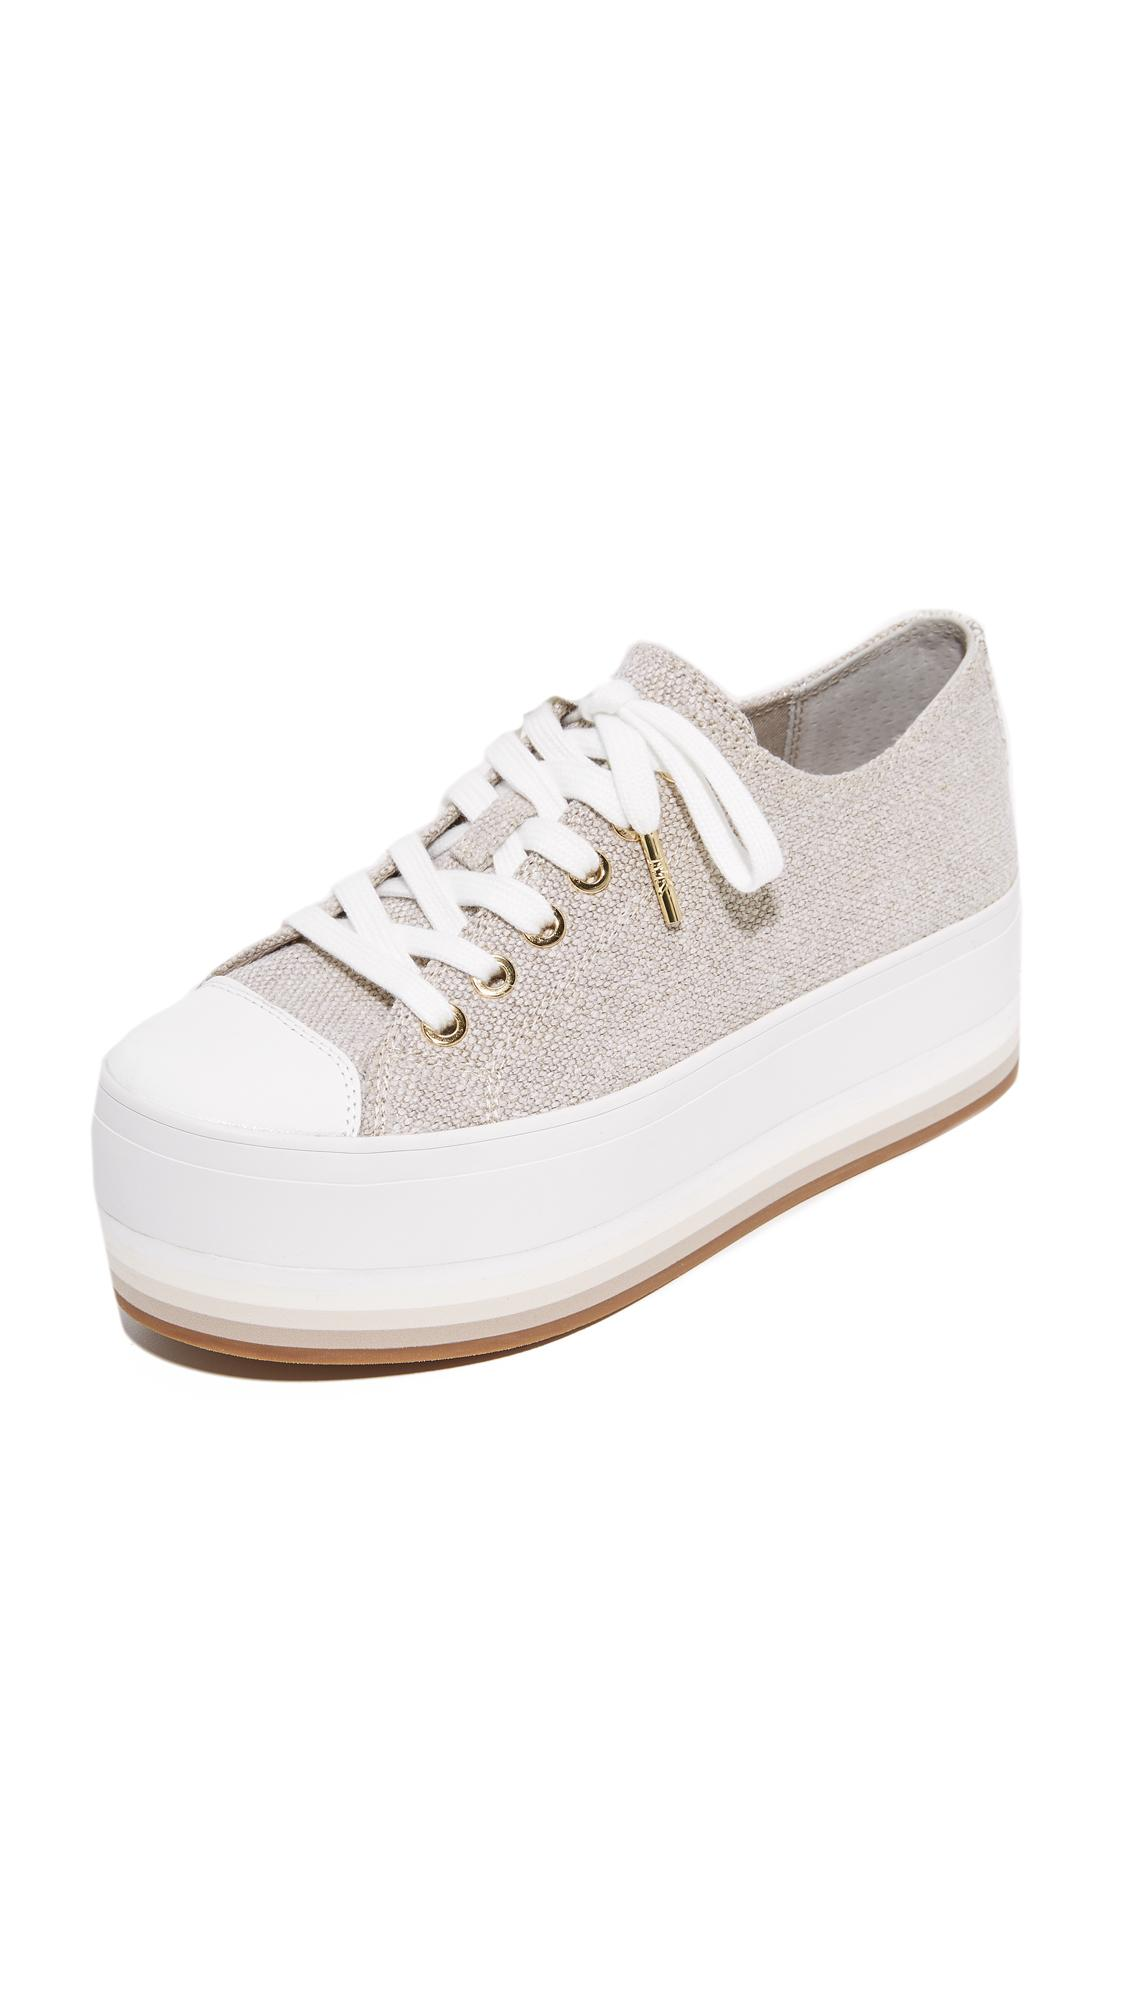 bb39e15a991b Lyst - MICHAEL Michael Kors Ronnie Platform Sneakers in Natural